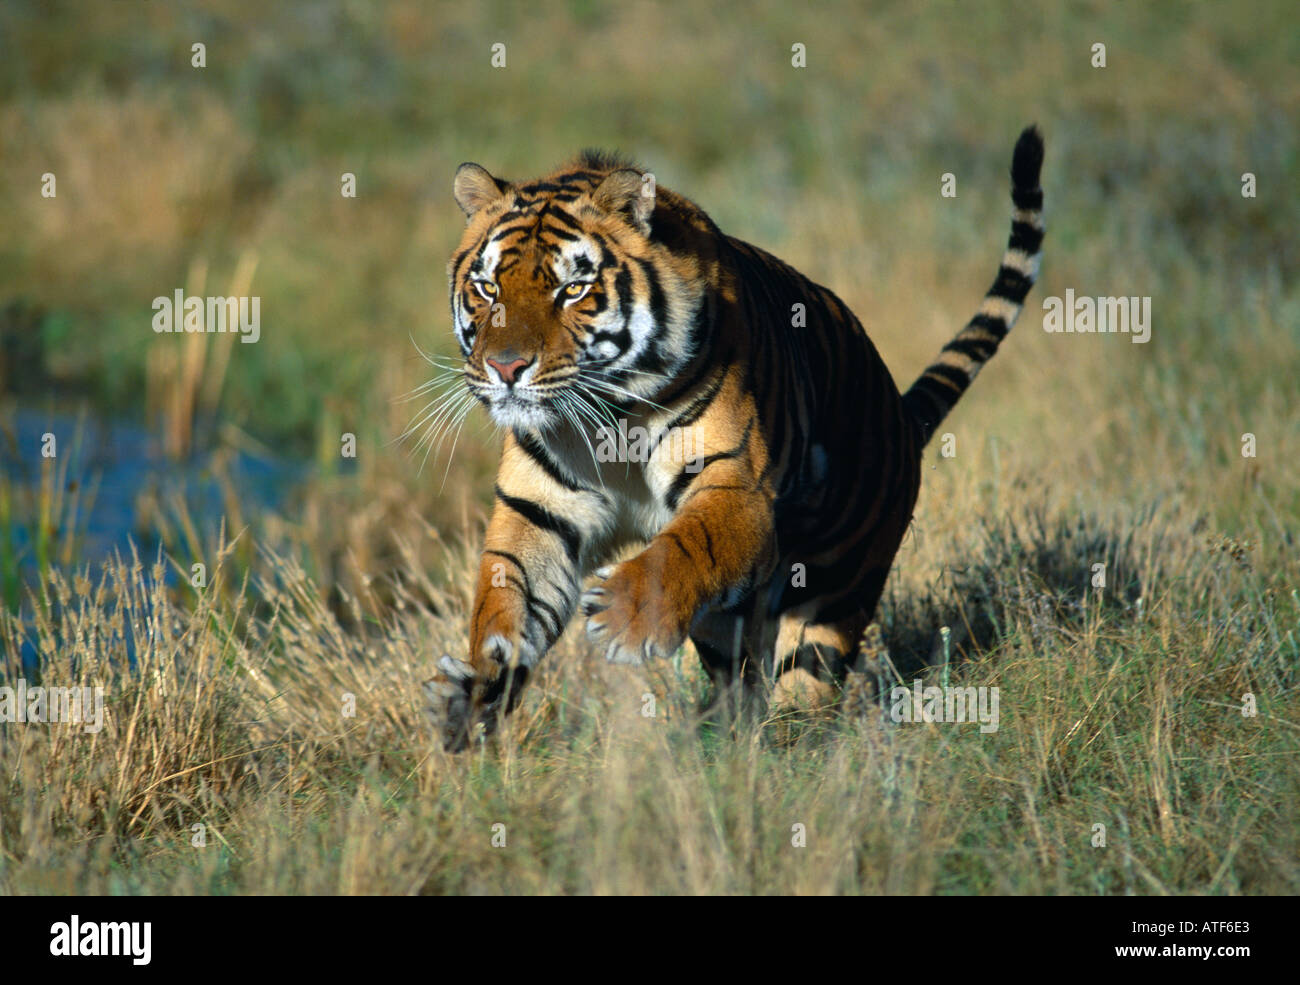 bengal tigers running stock photos & bengal tigers running stock